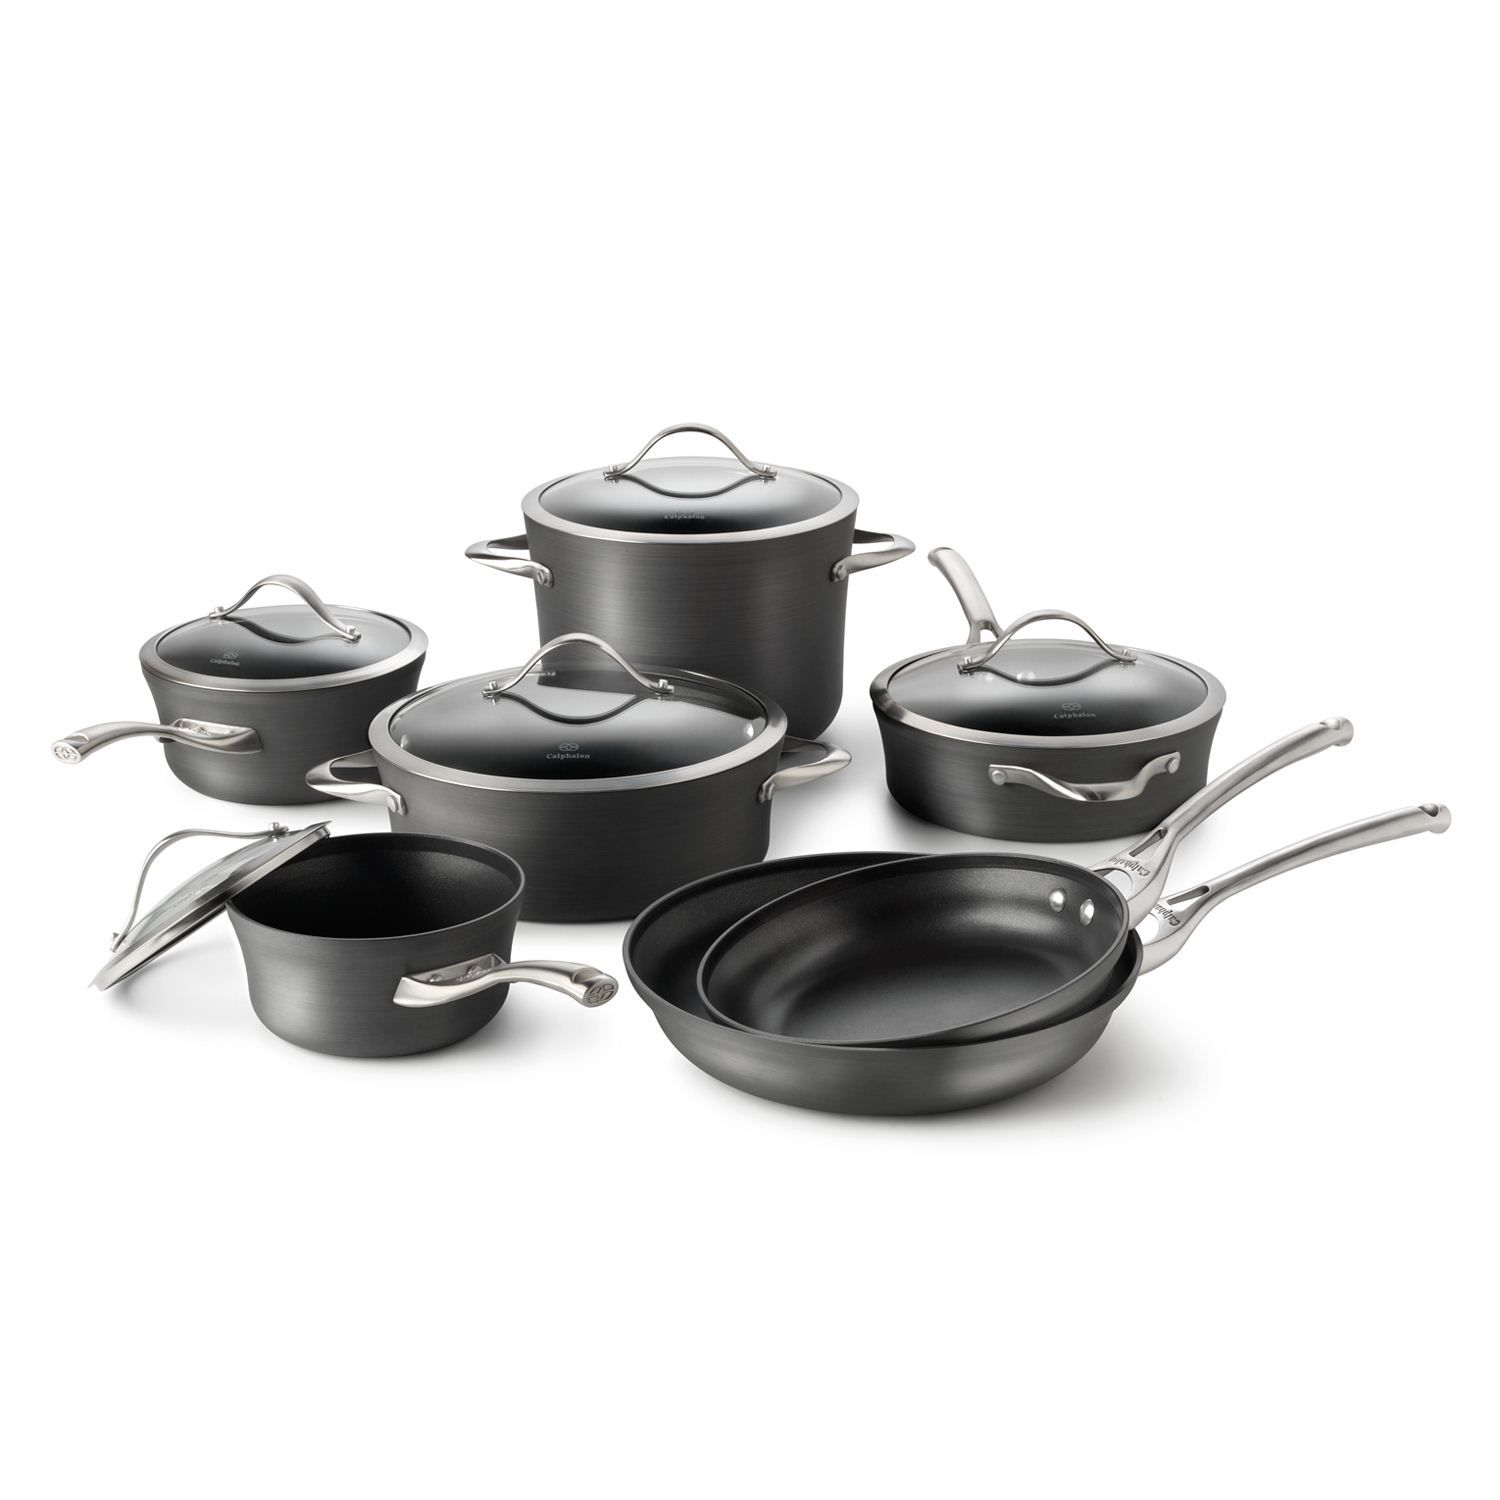 Create Gourmet Meals With This Calphalon Cookware Set Kohls Weddingregistry Hard Anodized Cookware Calphalon Cookware Dishwasher Safe Cookware